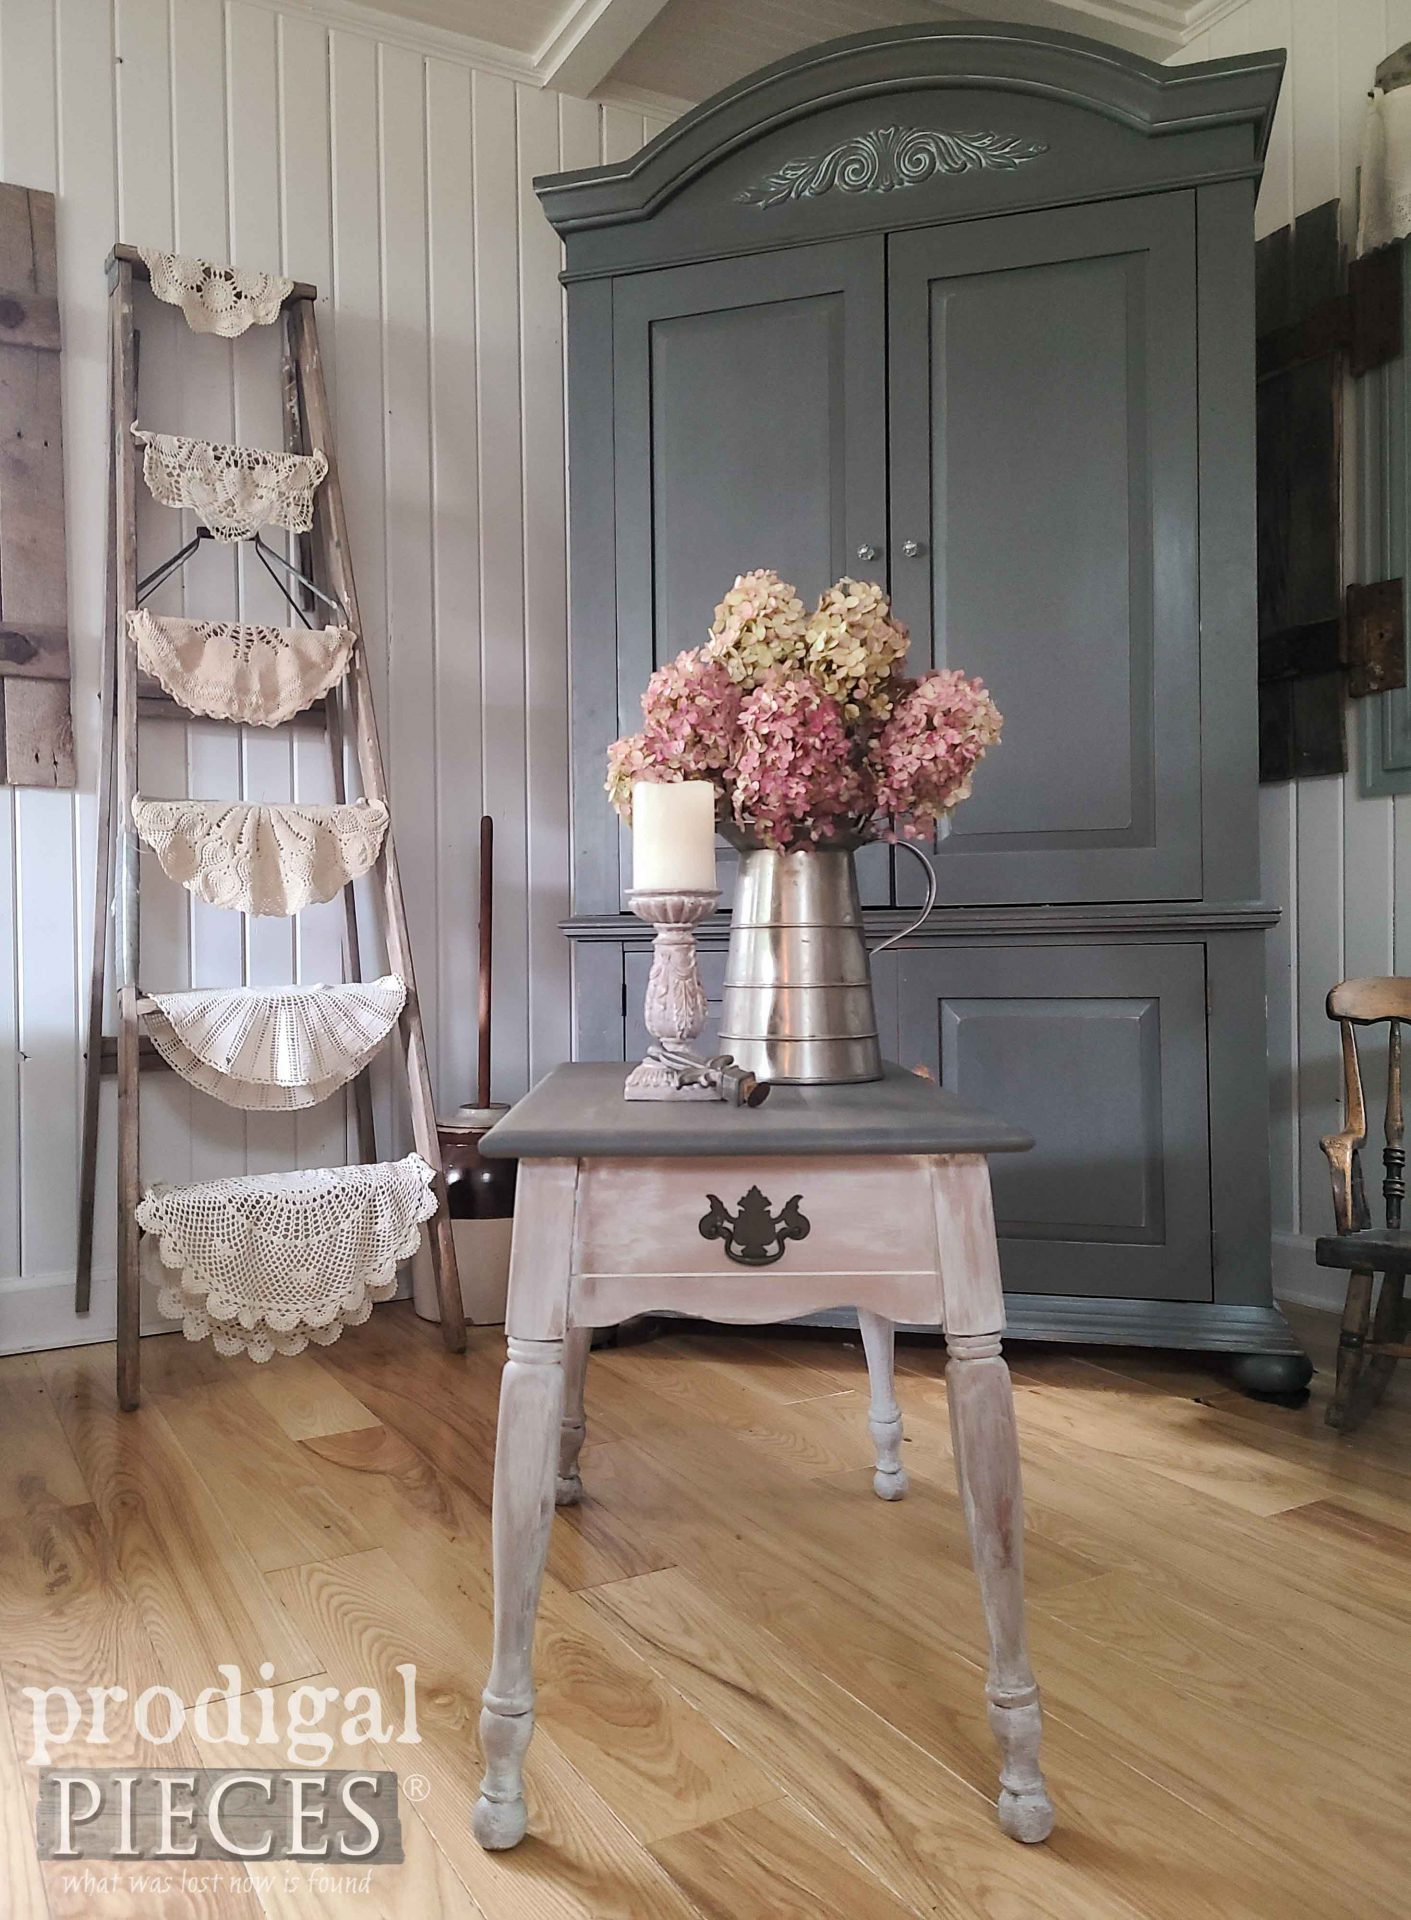 Vintage Side Table with Whitewash by Larissa of Prodigal Pieces | prodigalpieces.com #prodigalpieces #vintage #furniture